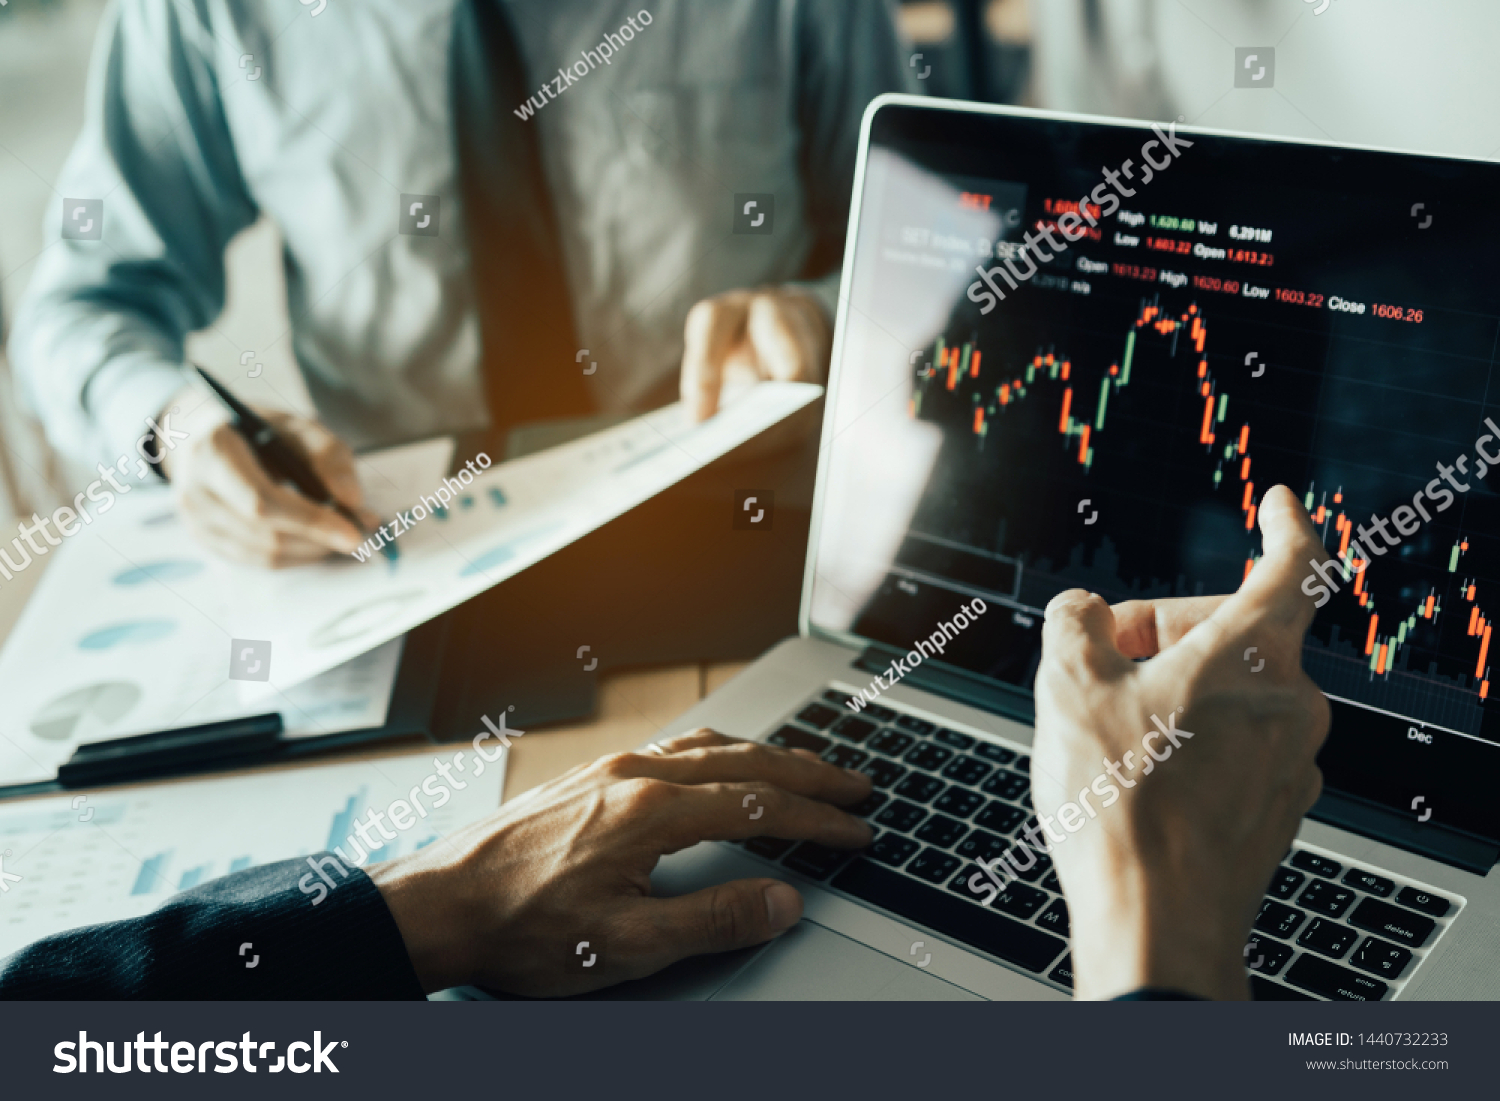 Investors are pointing to laptops that have investment information stock markets and partners taking notes and analyzing performance data. #1440732233